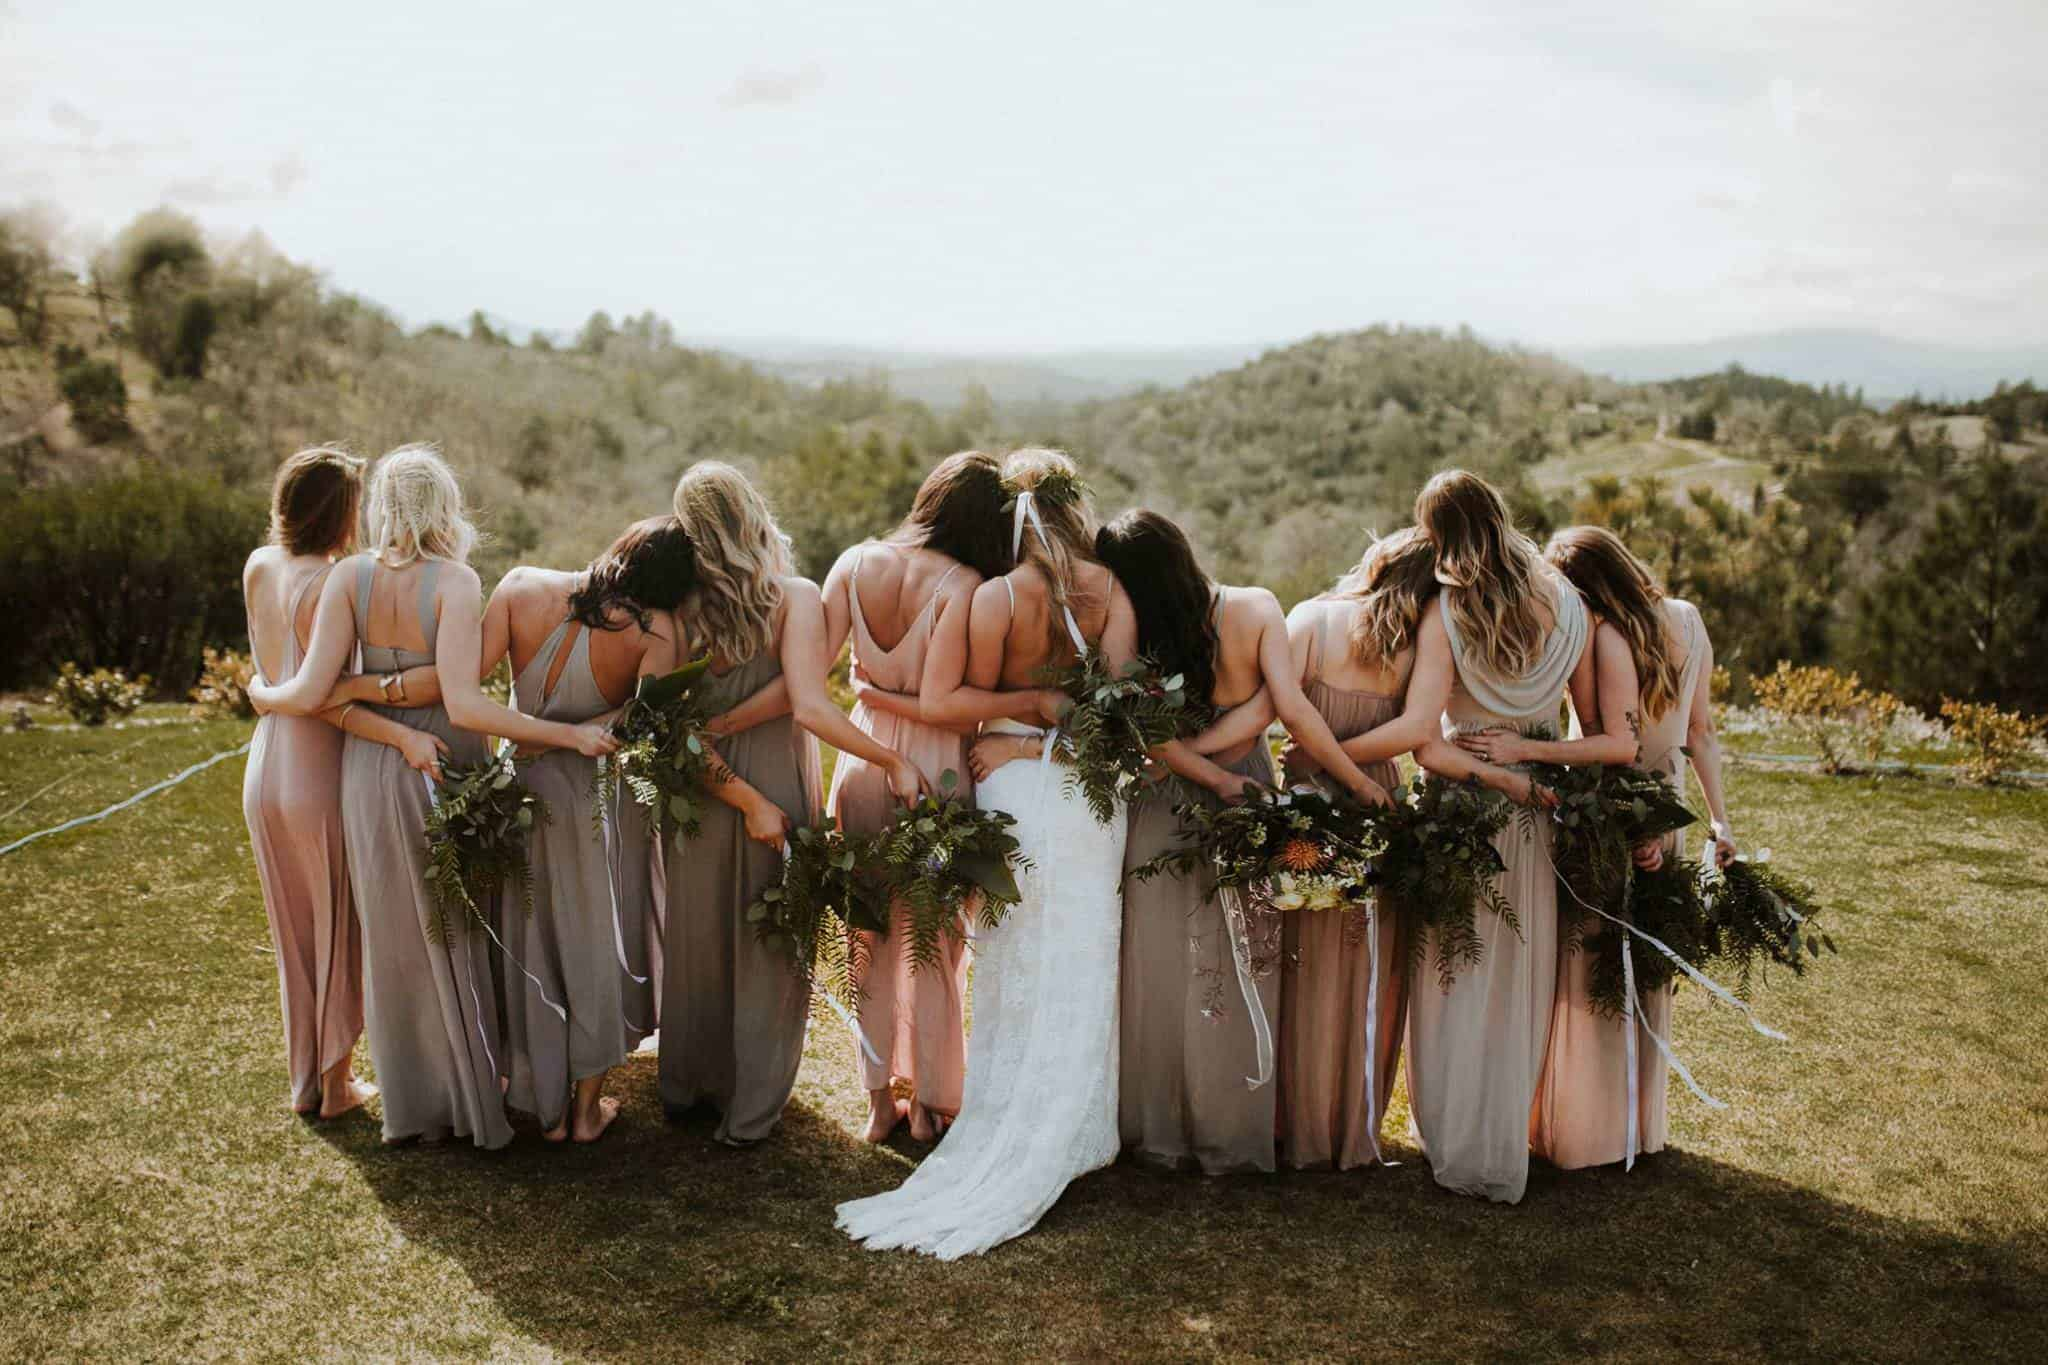 A group of female friends holding each other and bouquets in their hands are showing their backs to the camera.